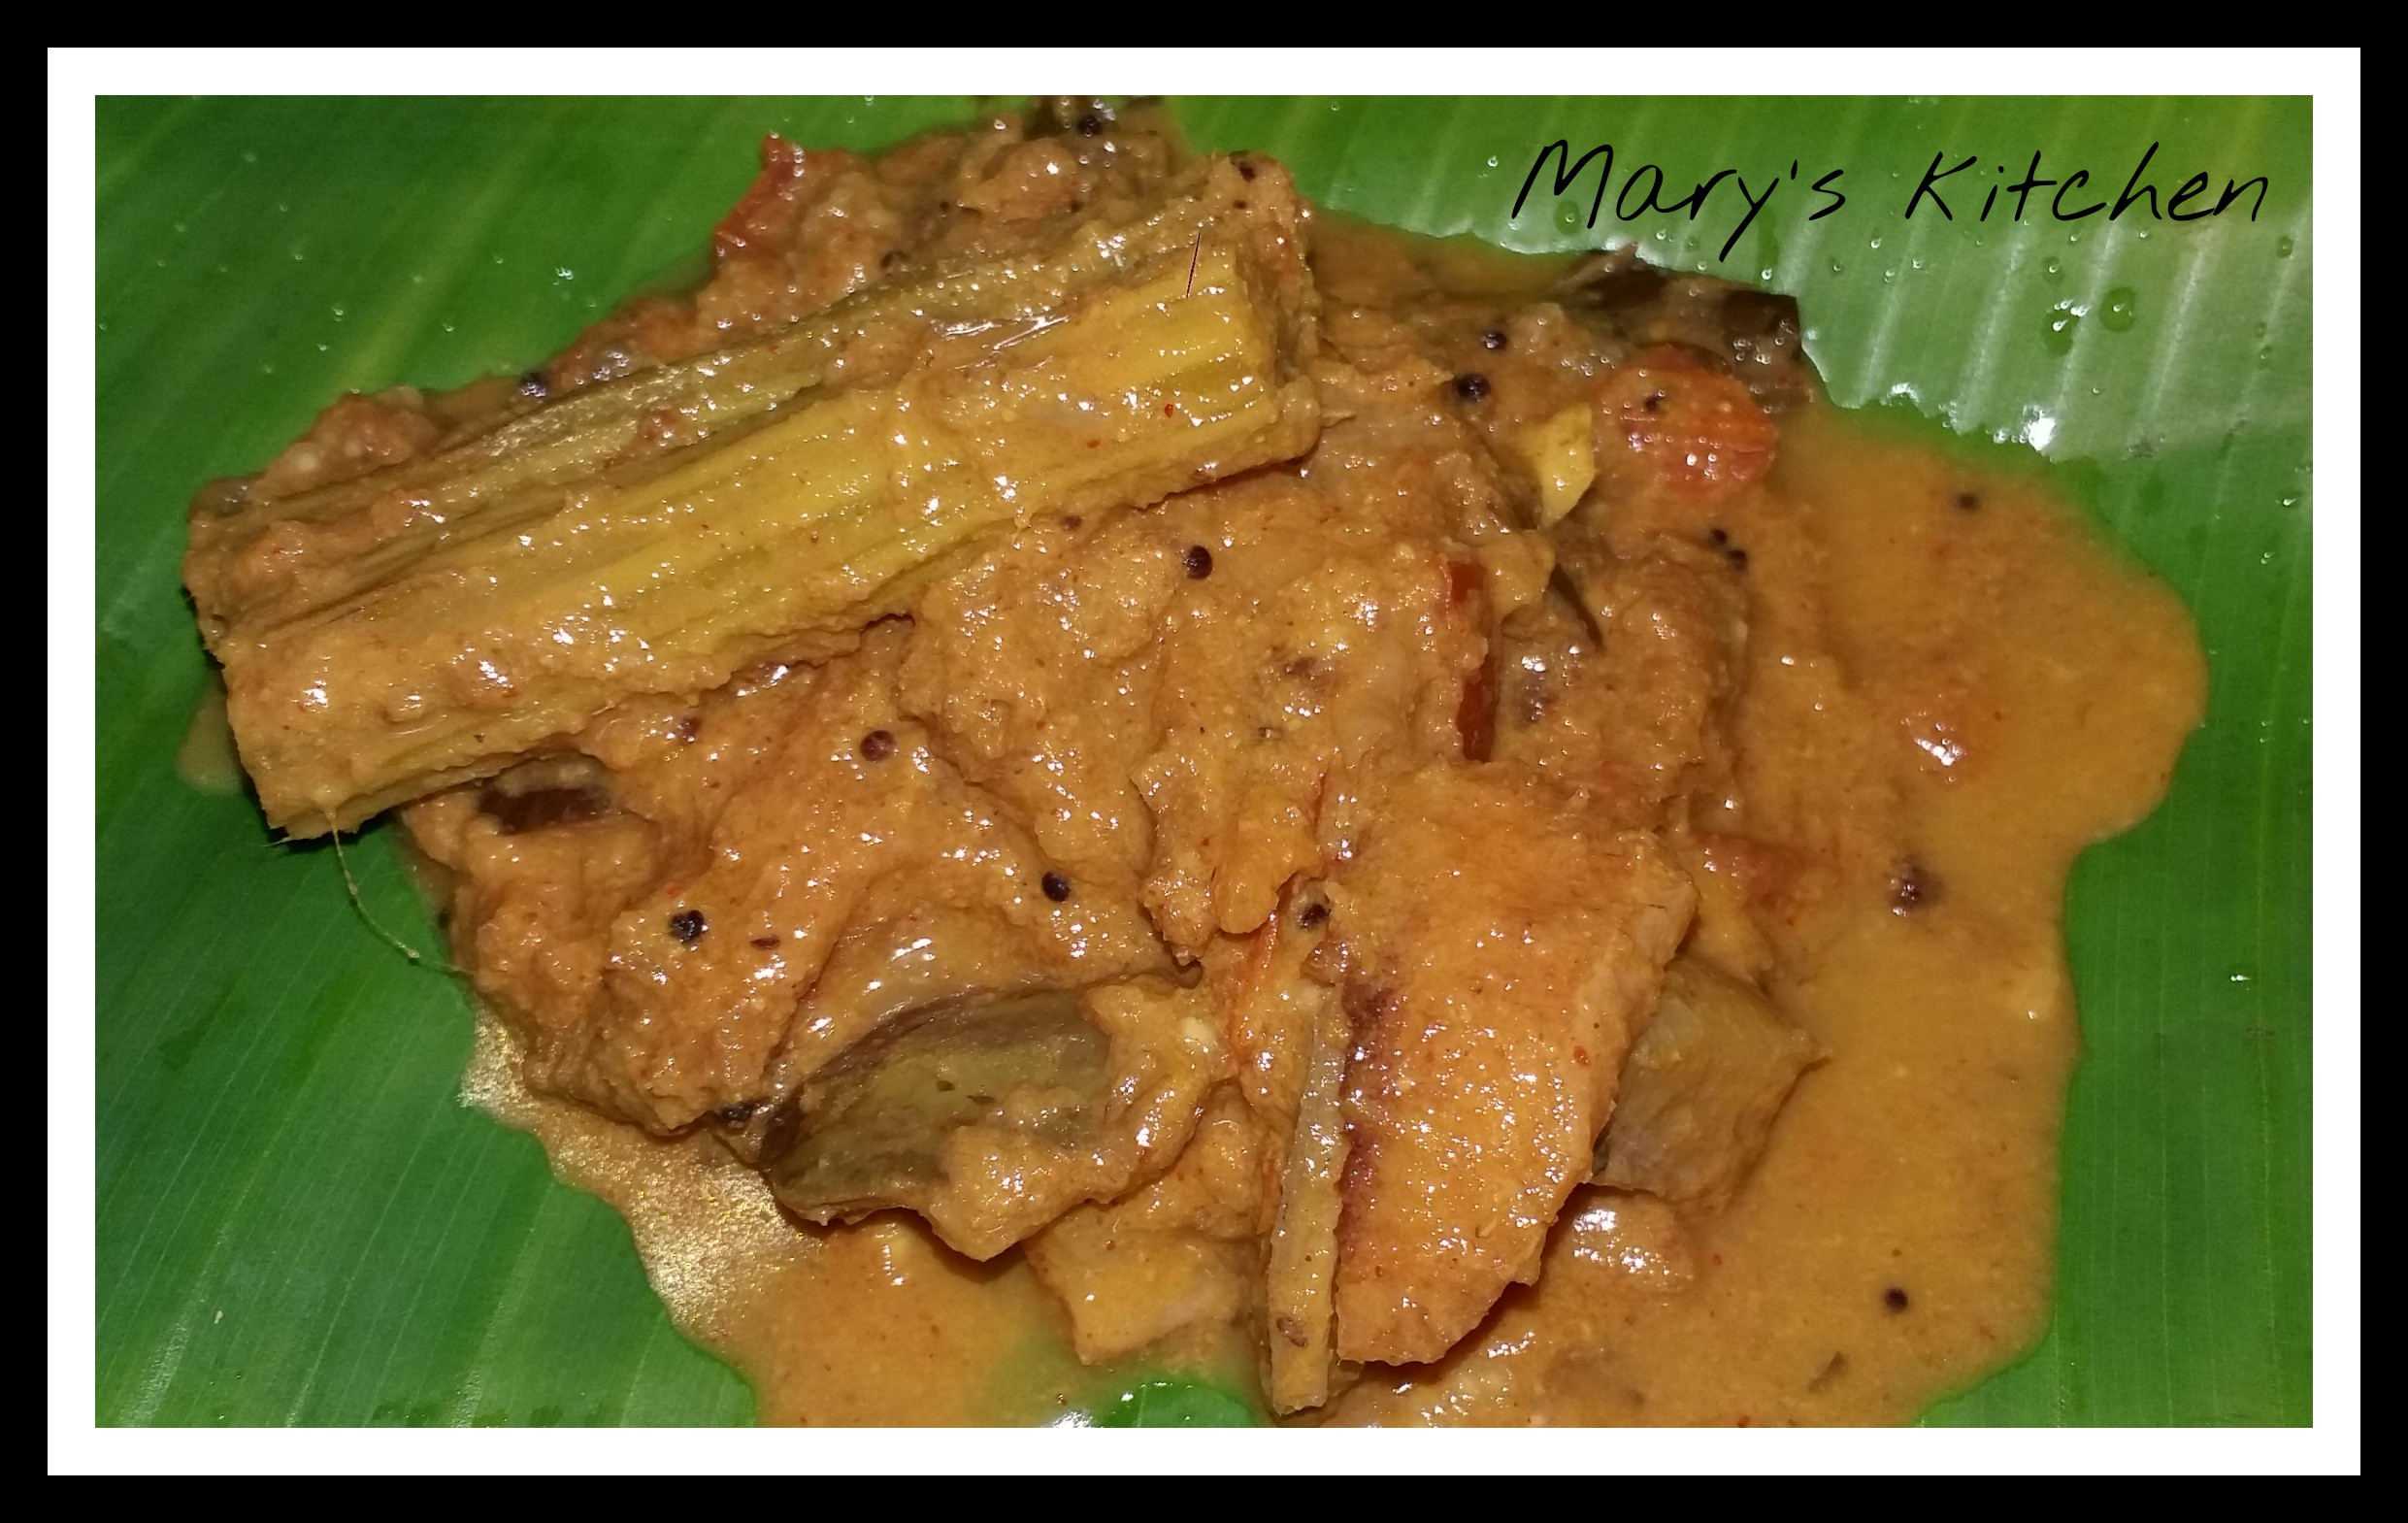 Dried fish curry recipe mary 39 s kitchen for Dry fish recipe